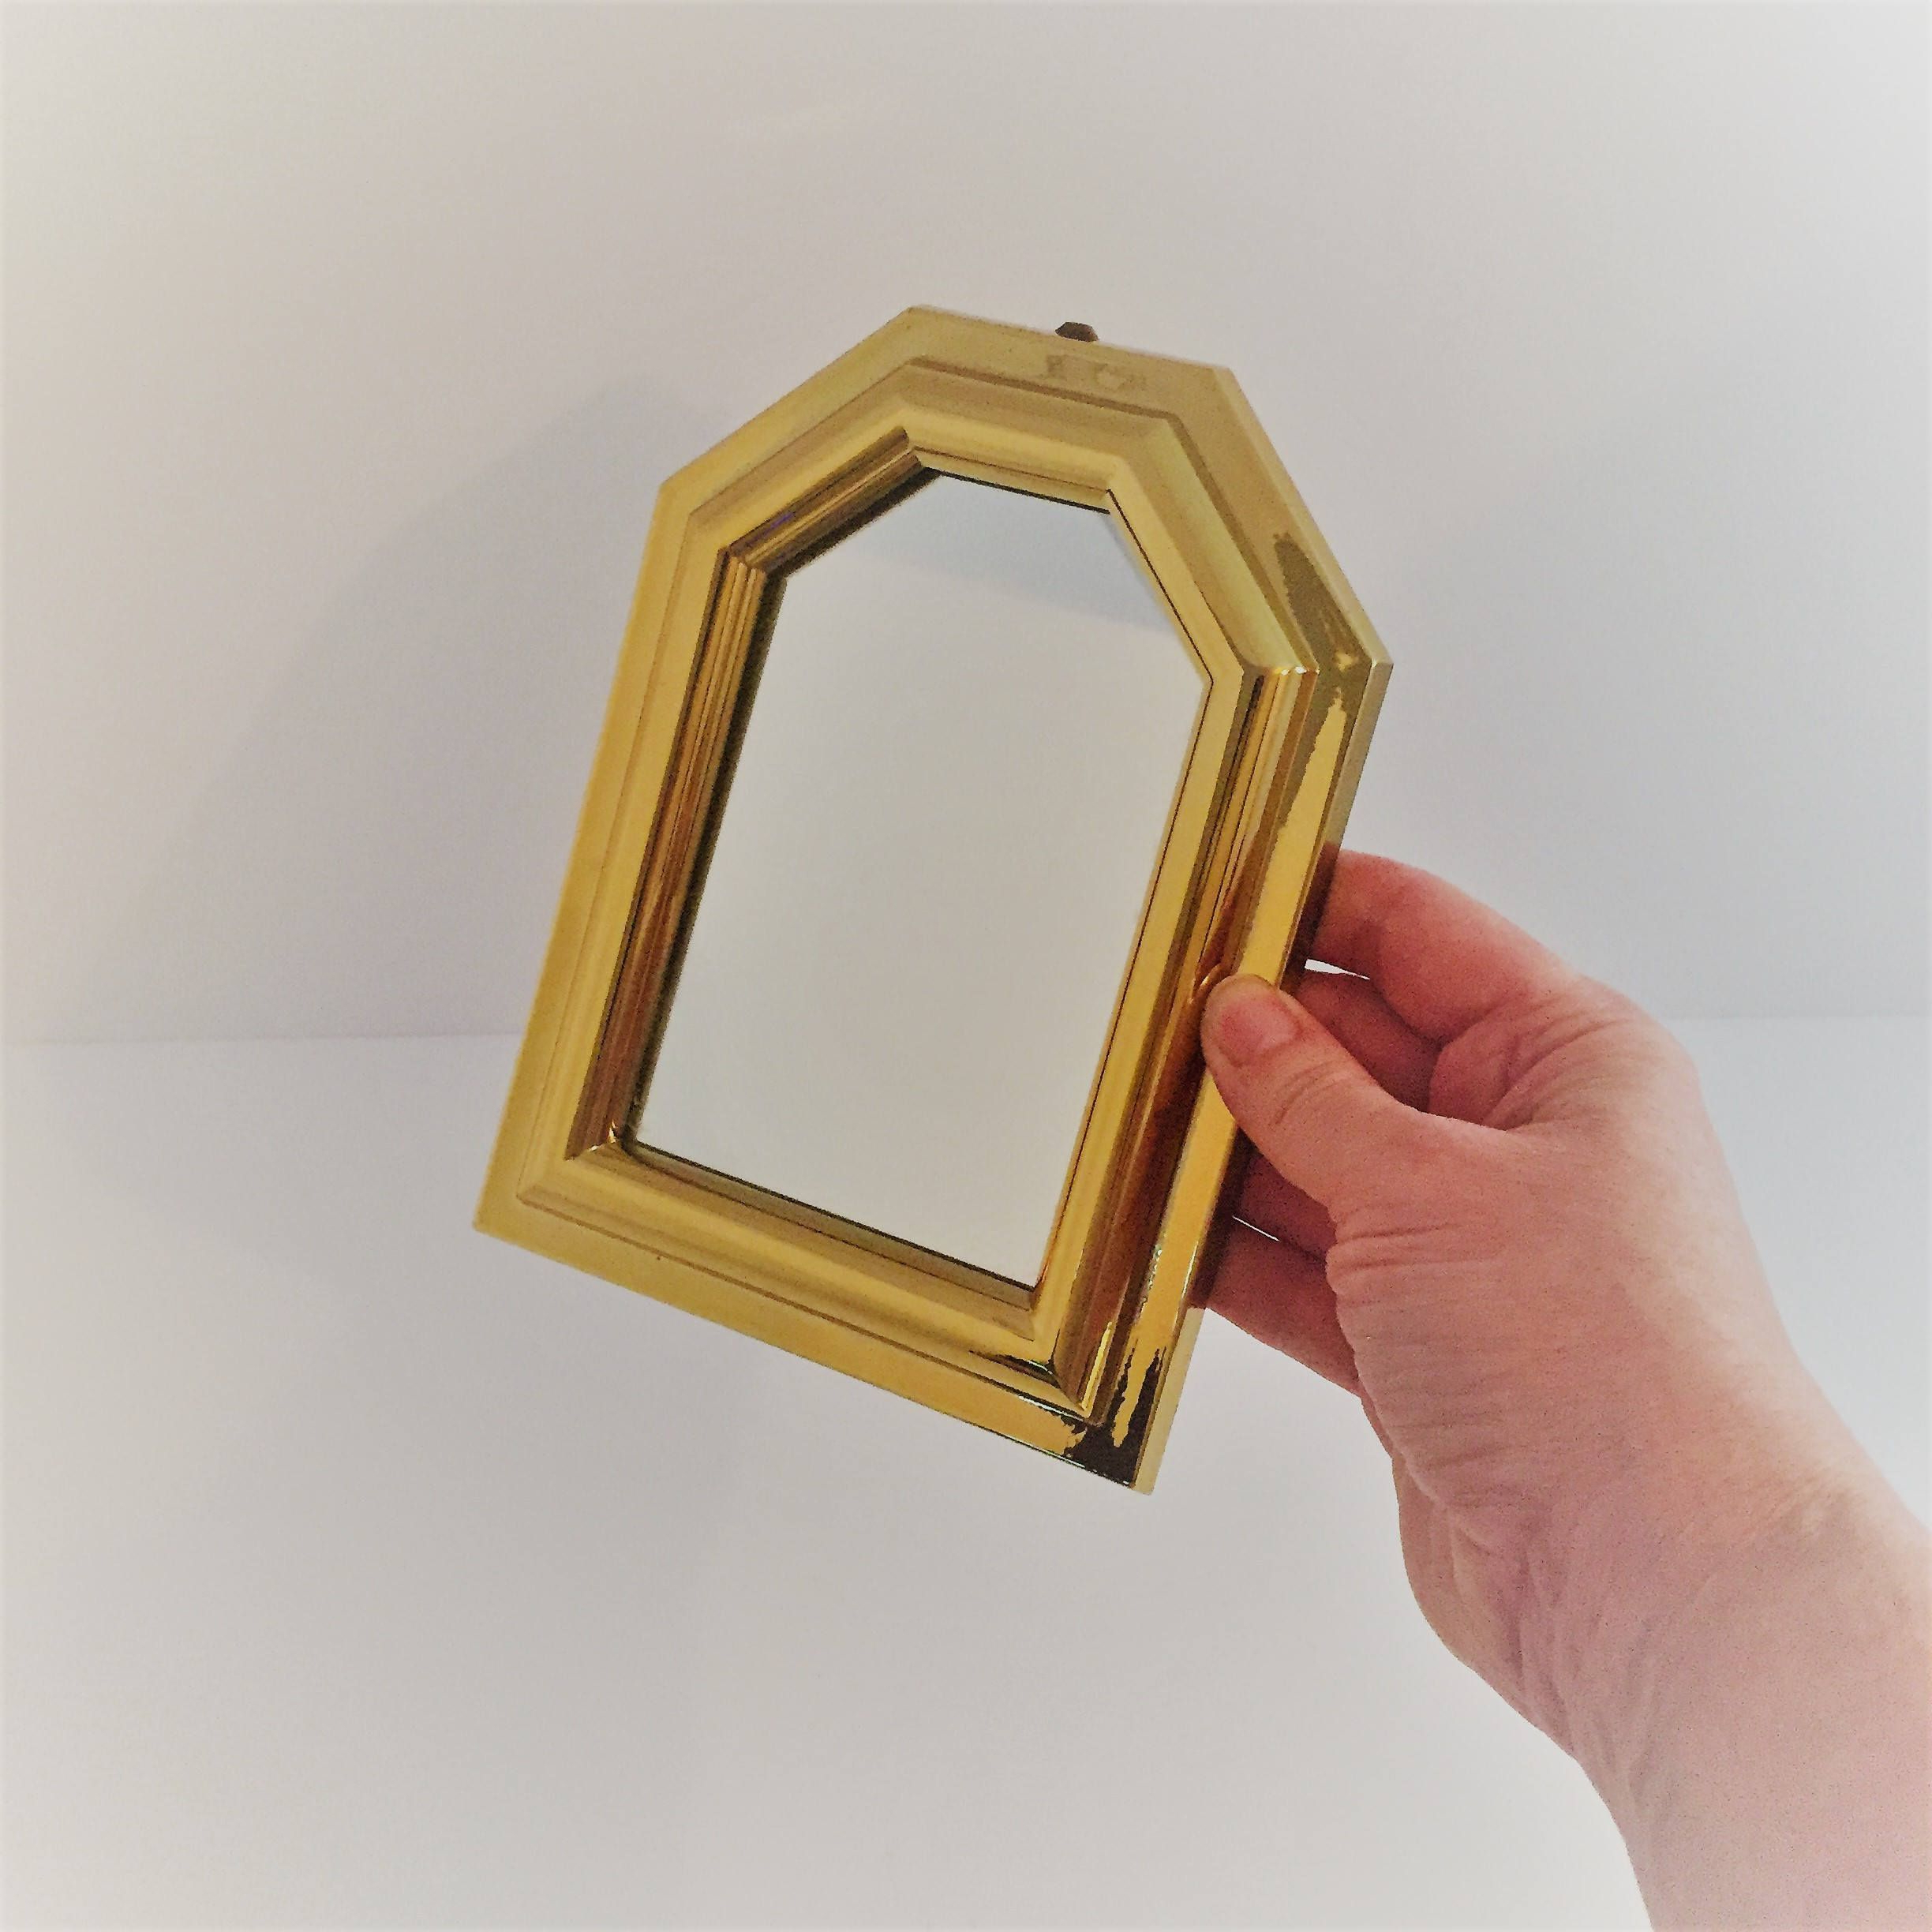 Lightweight Wall Mirrors Intended For Well Known Vintage Gold Mirror Decorative Gold Wall Mirror Lightweight Hanging (Gallery 8 of 20)